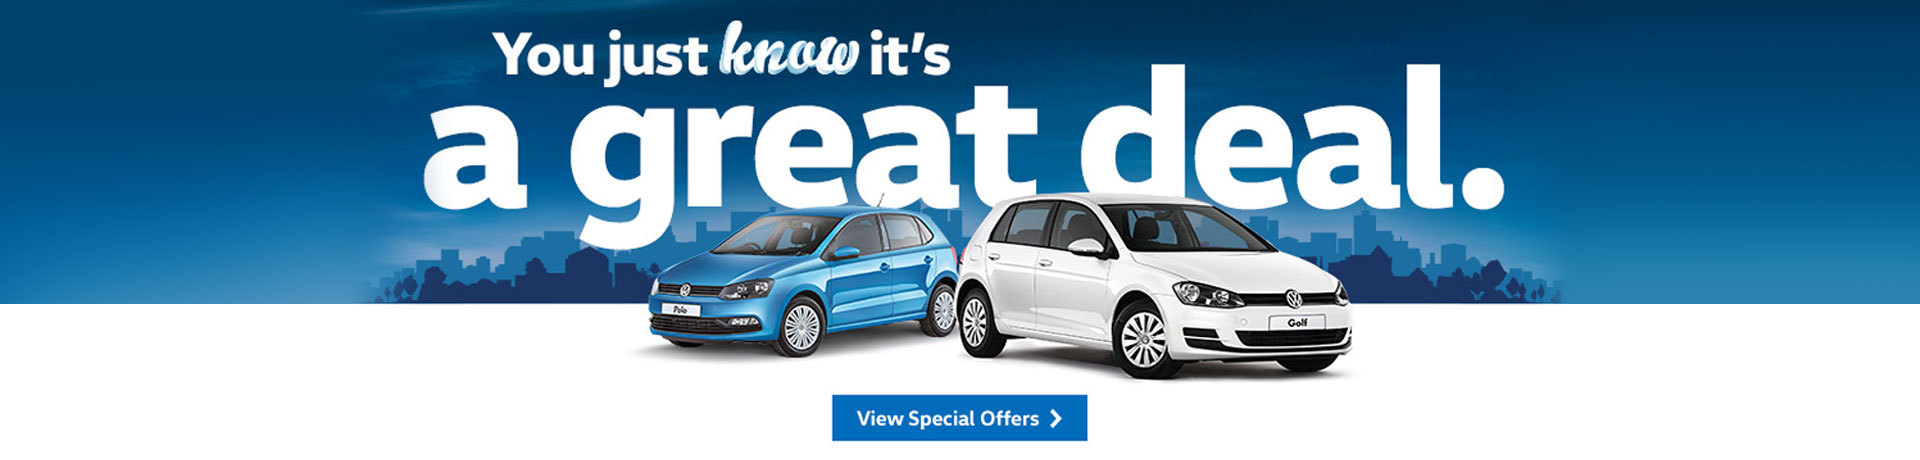 You Just Know It's a Great Deal - 5 year unlimited KM warranty